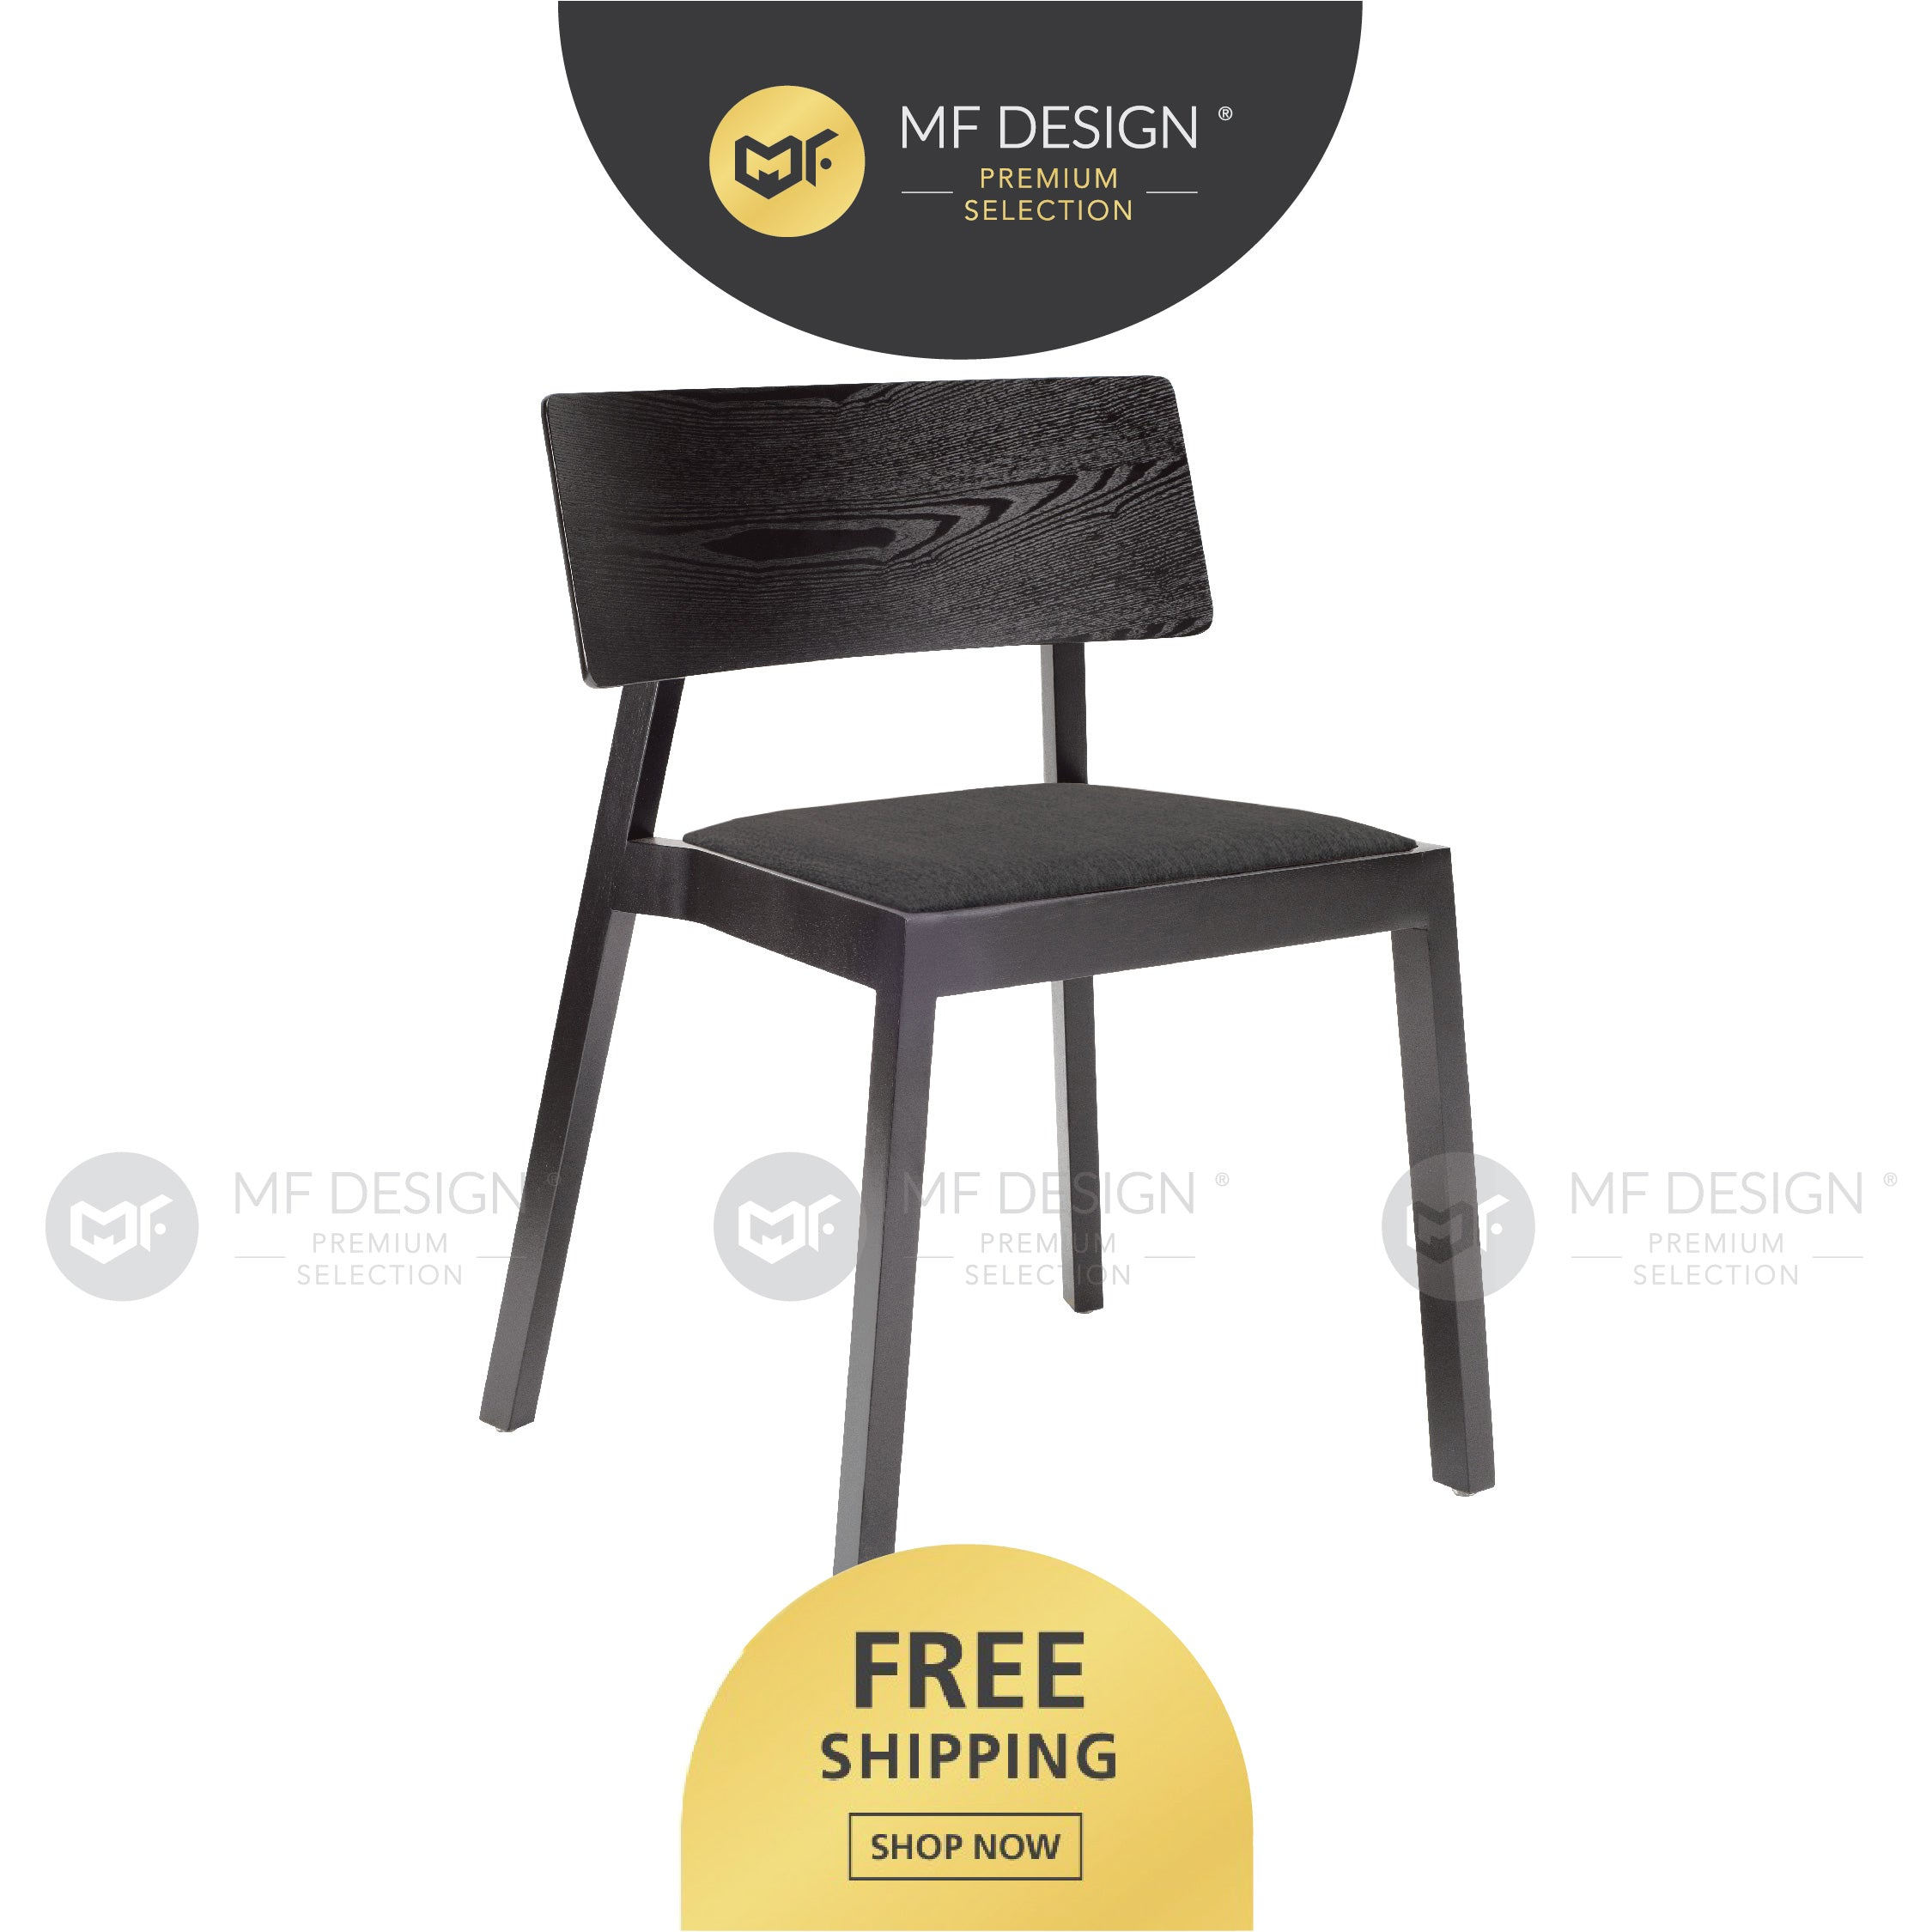 MFD Premium Whittney Dining Chair  / kerusi / chair